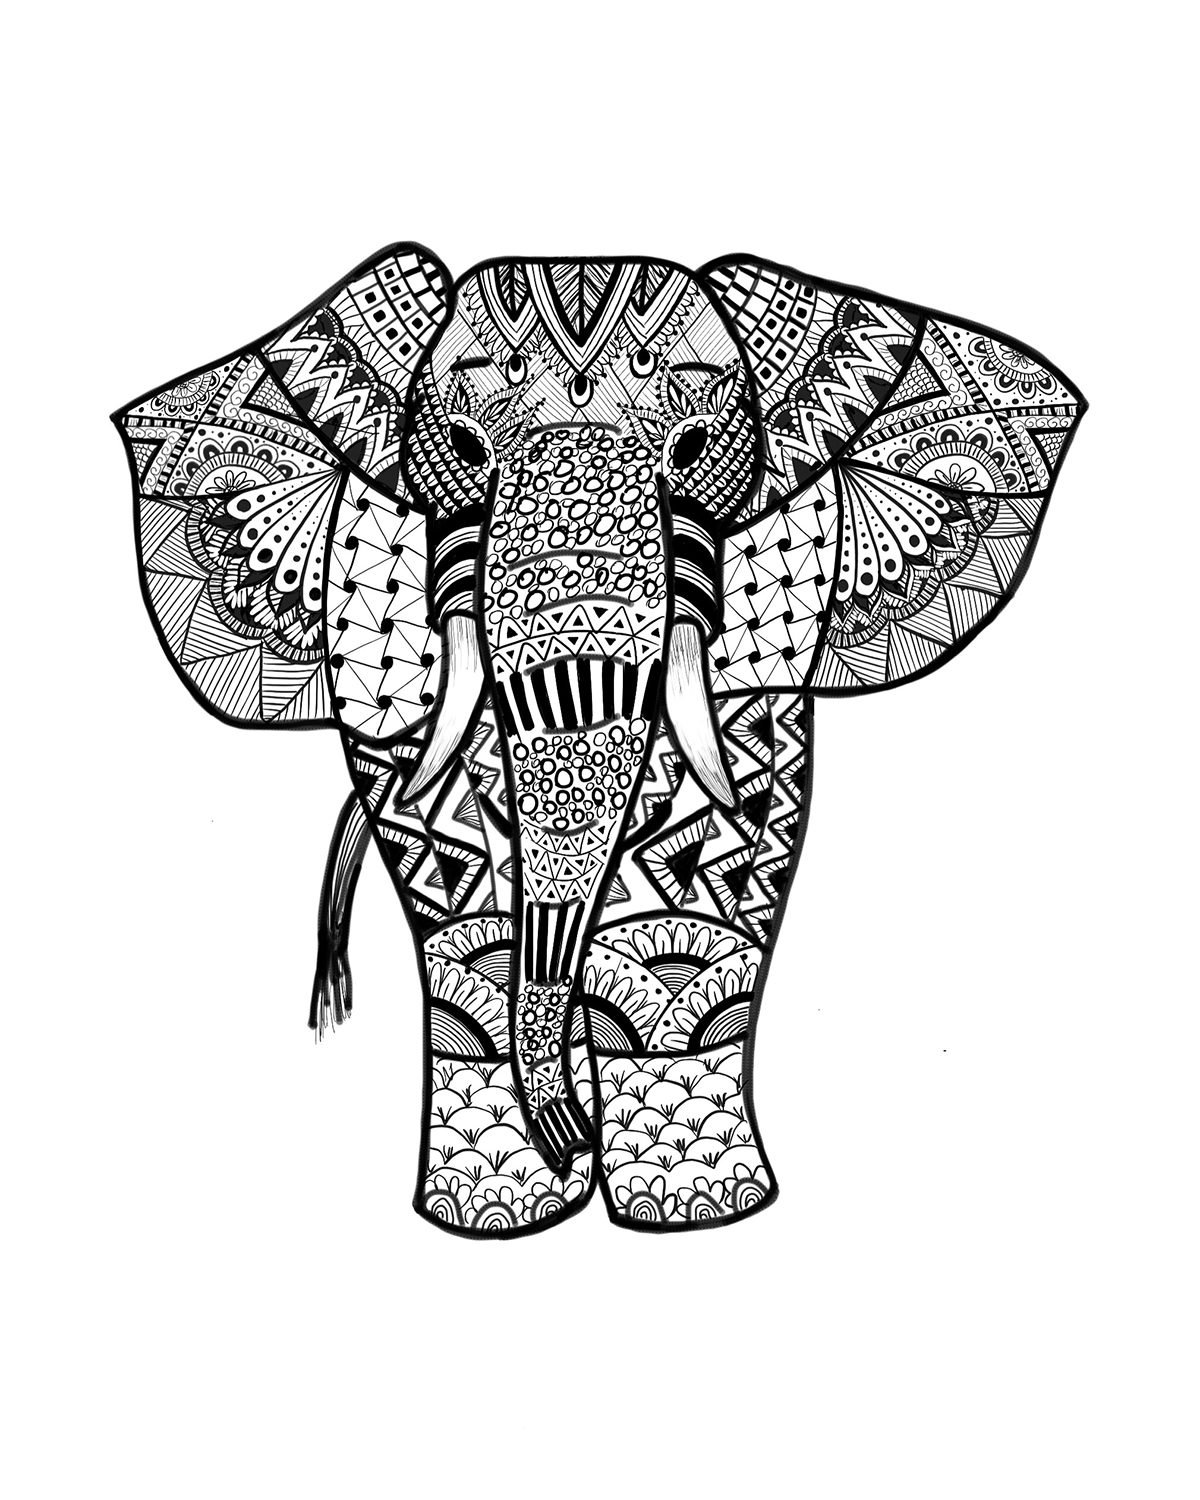 coloring pages elephants elephant coloring pages for adults best coloring pages elephants pages coloring